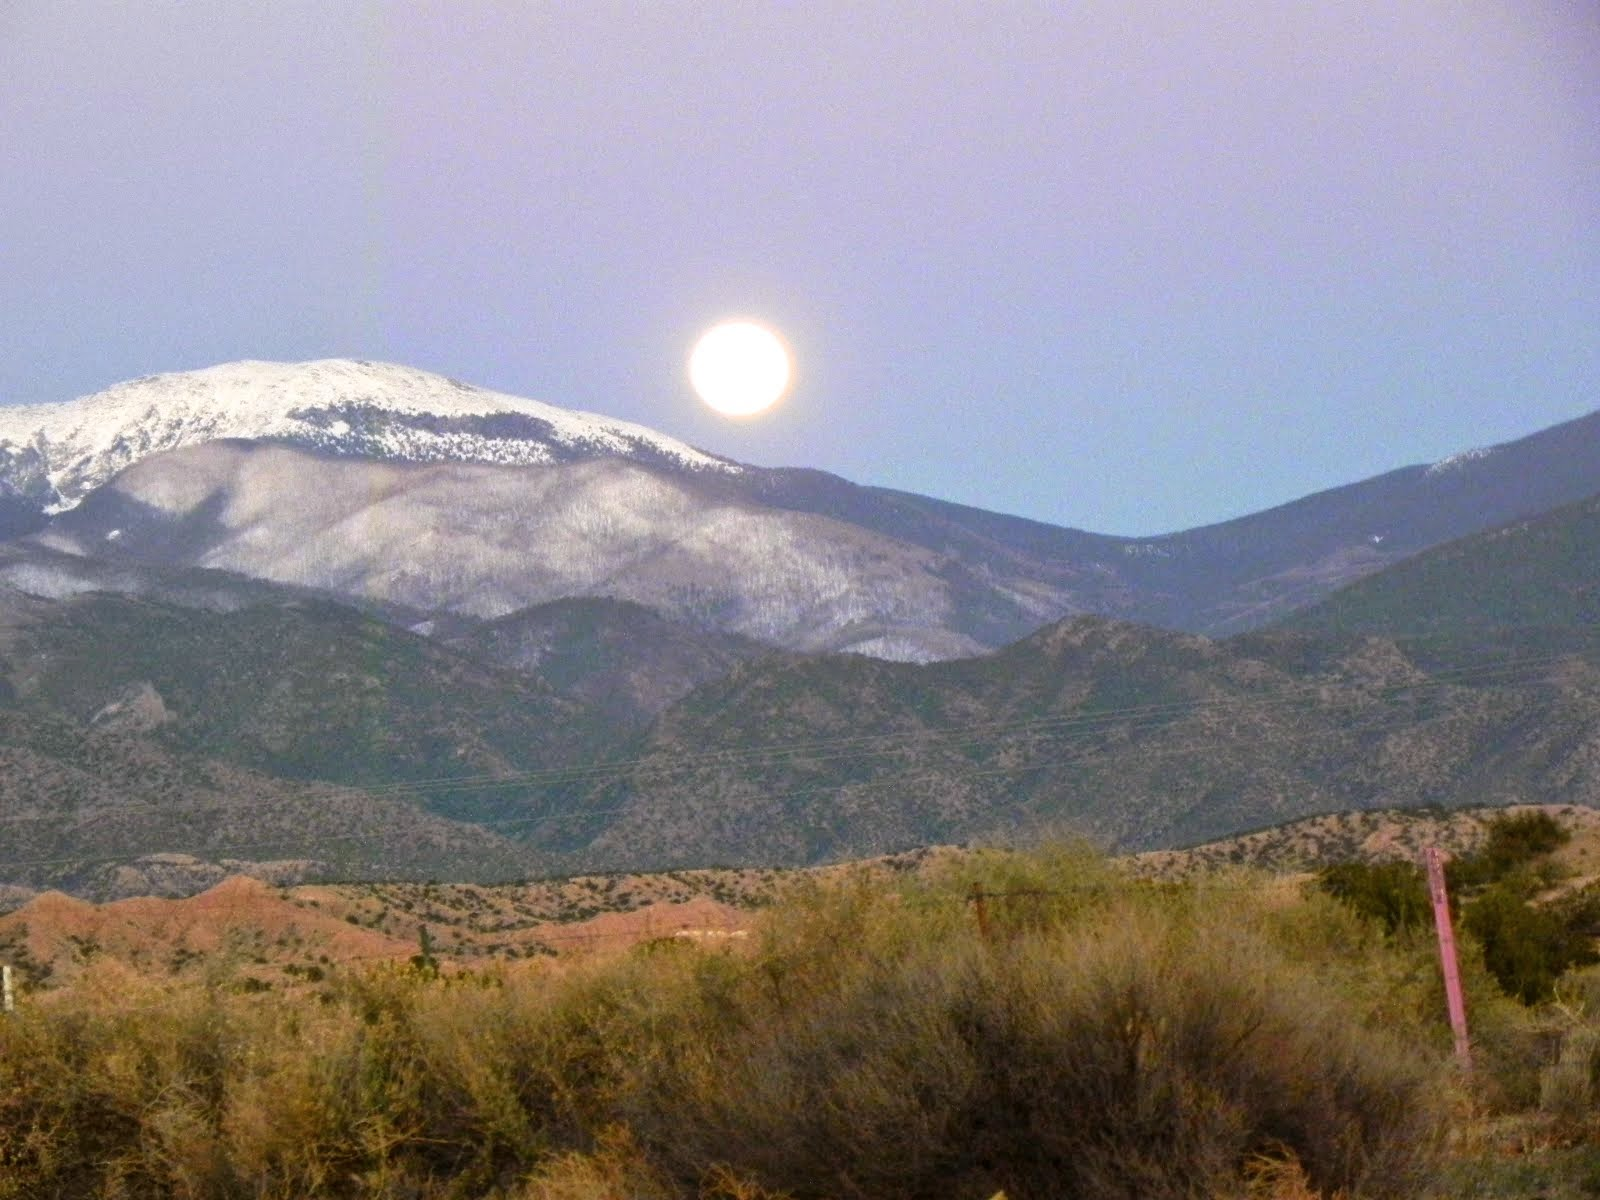 Moon over the Sangre de Christo Mountains